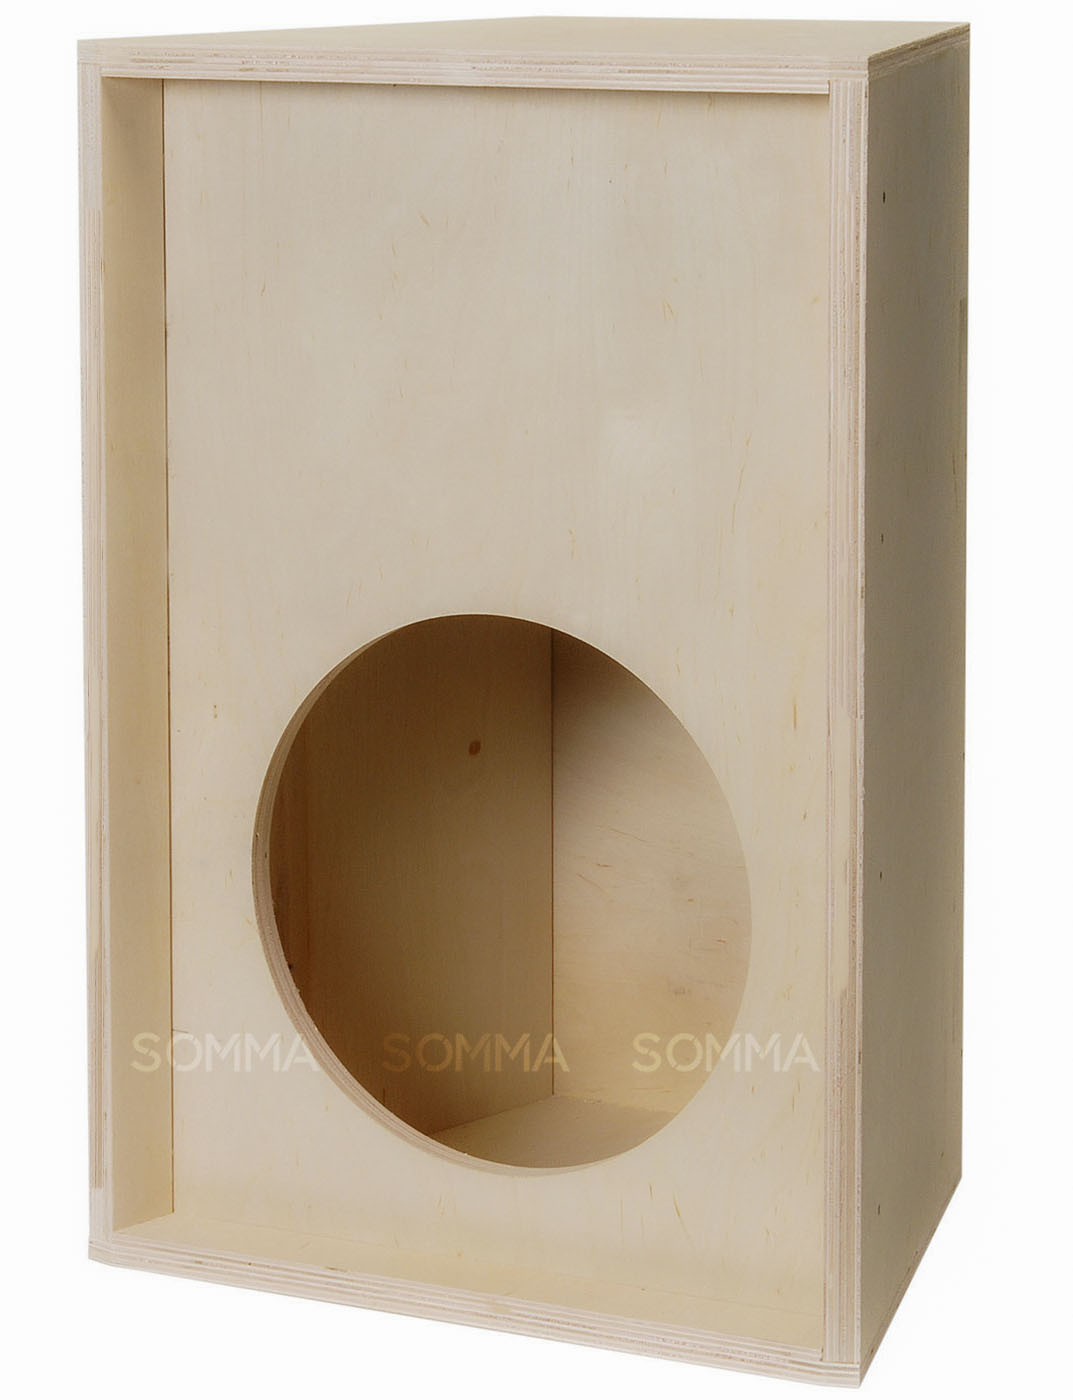 Plywood loudspeaker